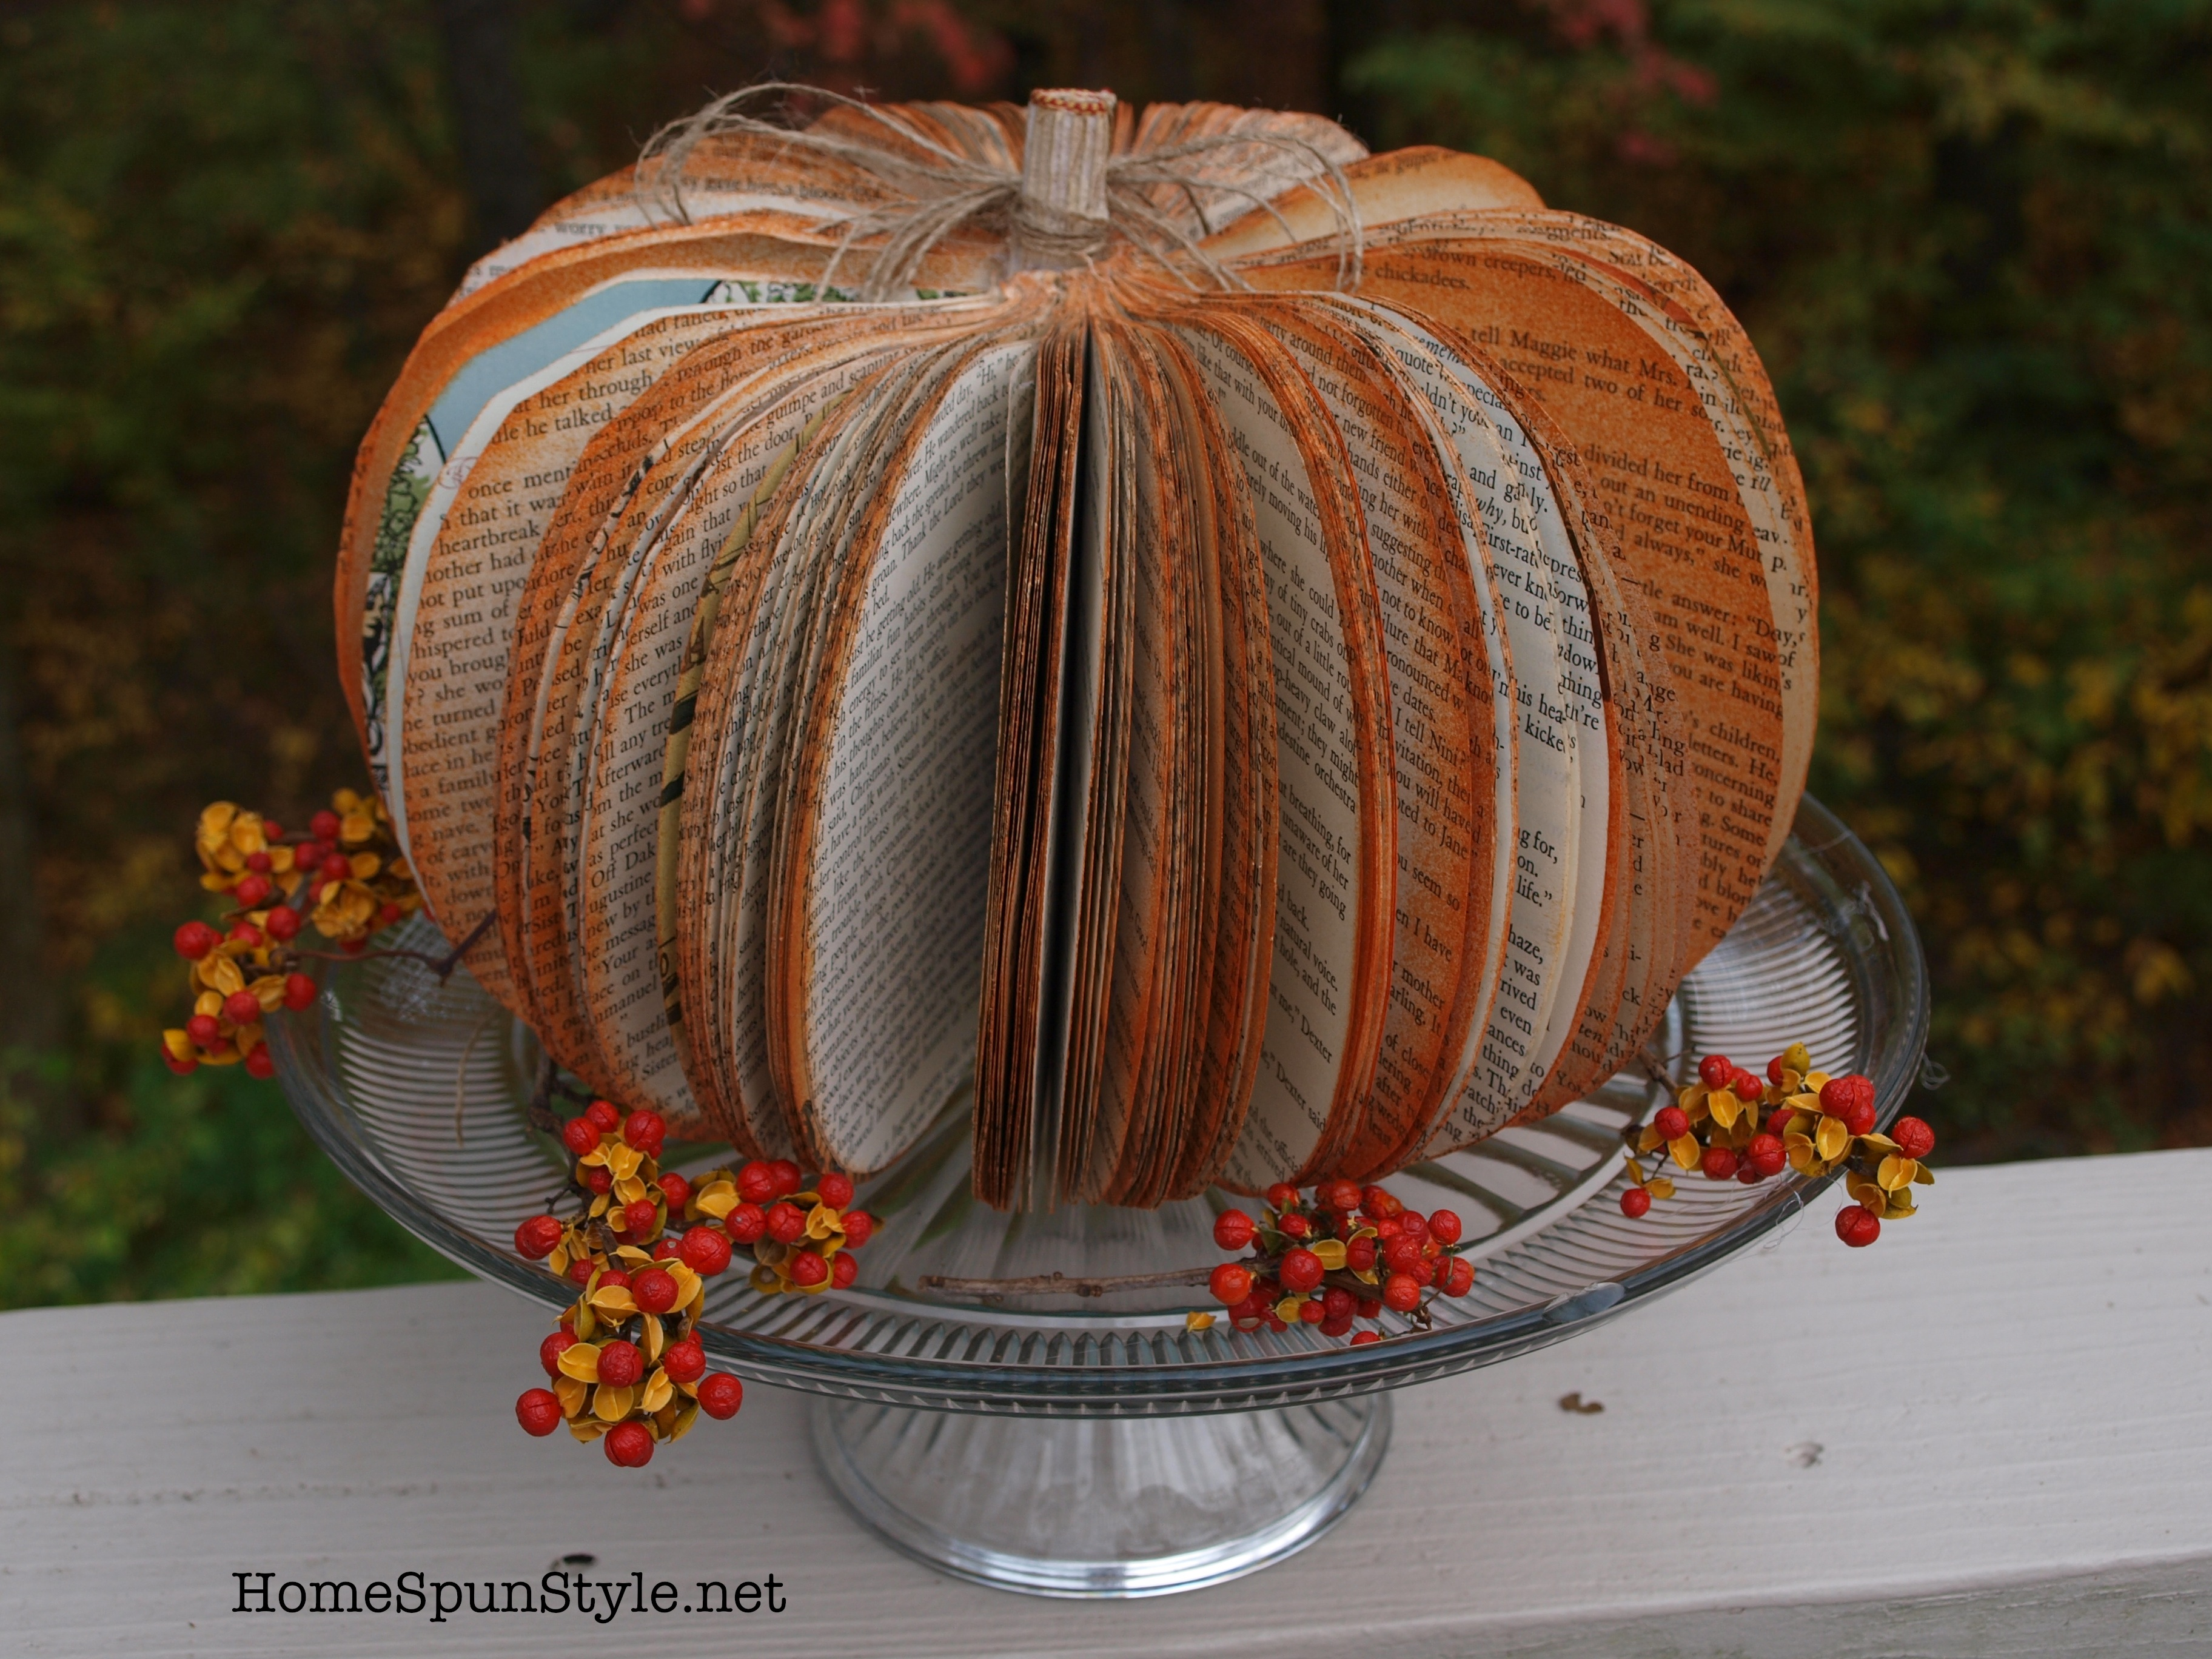 Oct 23,  · Make a nose out of air dry clay. Glue before painting. Paint the gourd brownish gold. When dry, add a mouth. Make wings out of paper towels or felt and glue on. Paint two mini pumpkins white. Glue the mini pumpkins to the top for eyes. Paint a black circle in the middle of each. Add chenille craft sticks for arms, legs, and antennae.